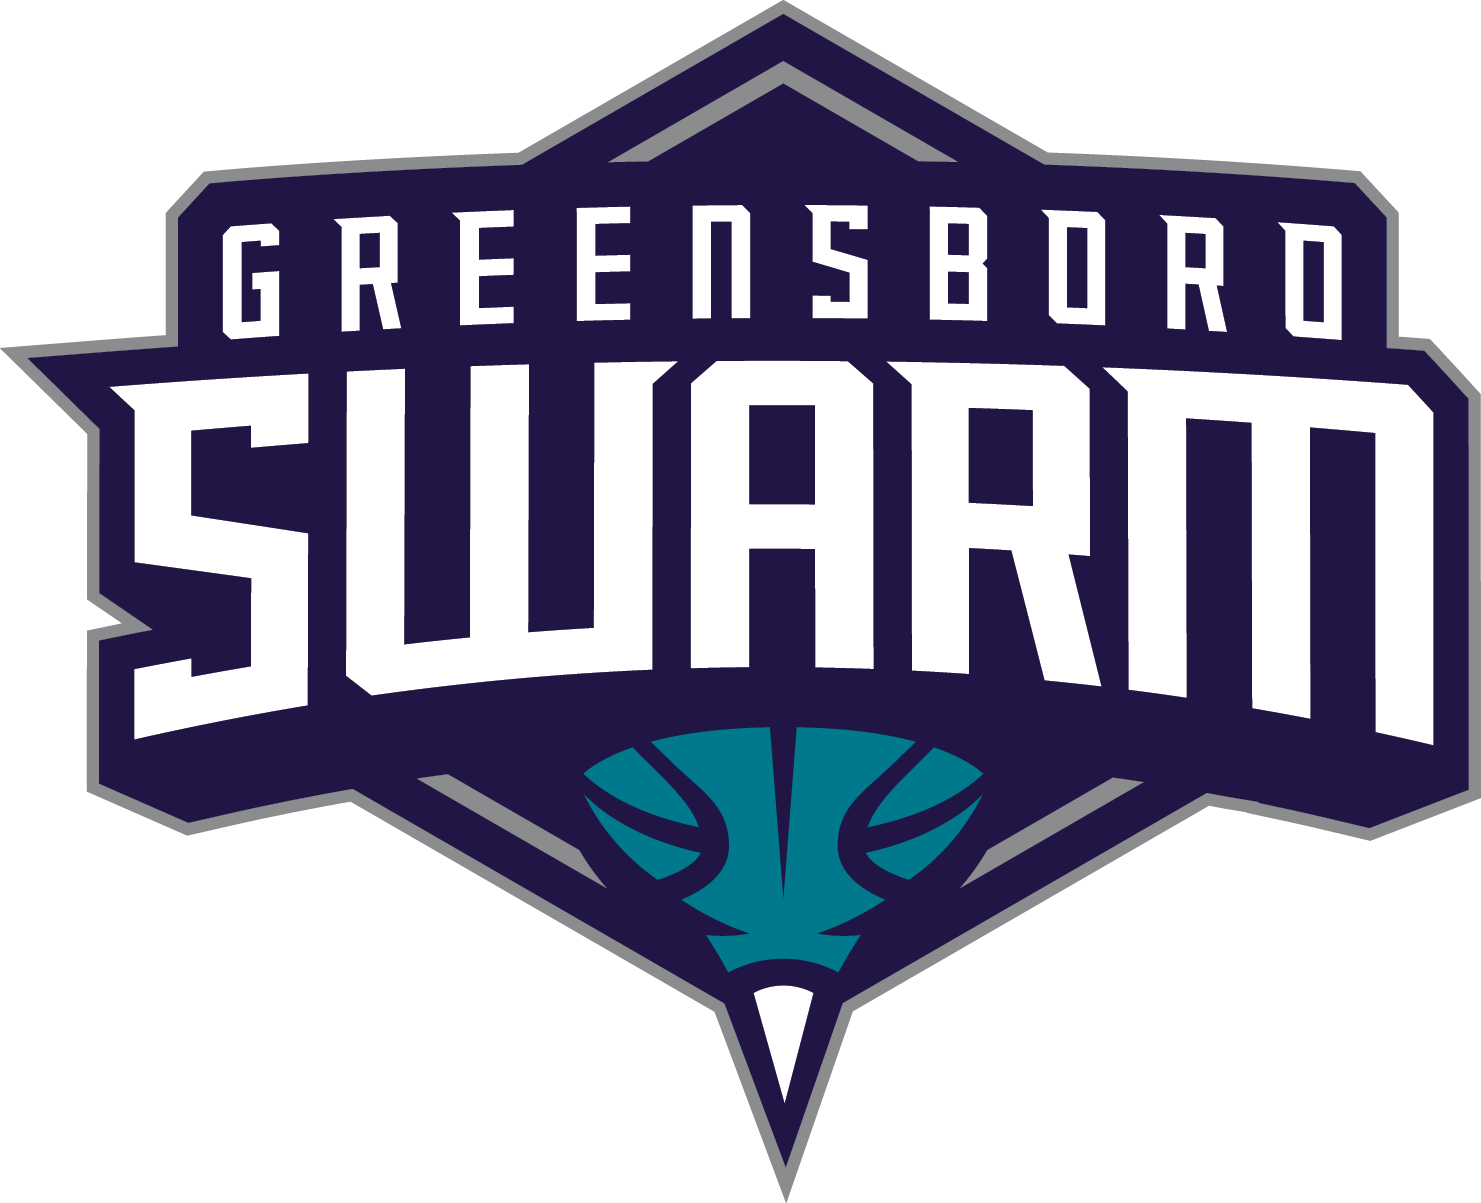 GreensboroSwarm_primary